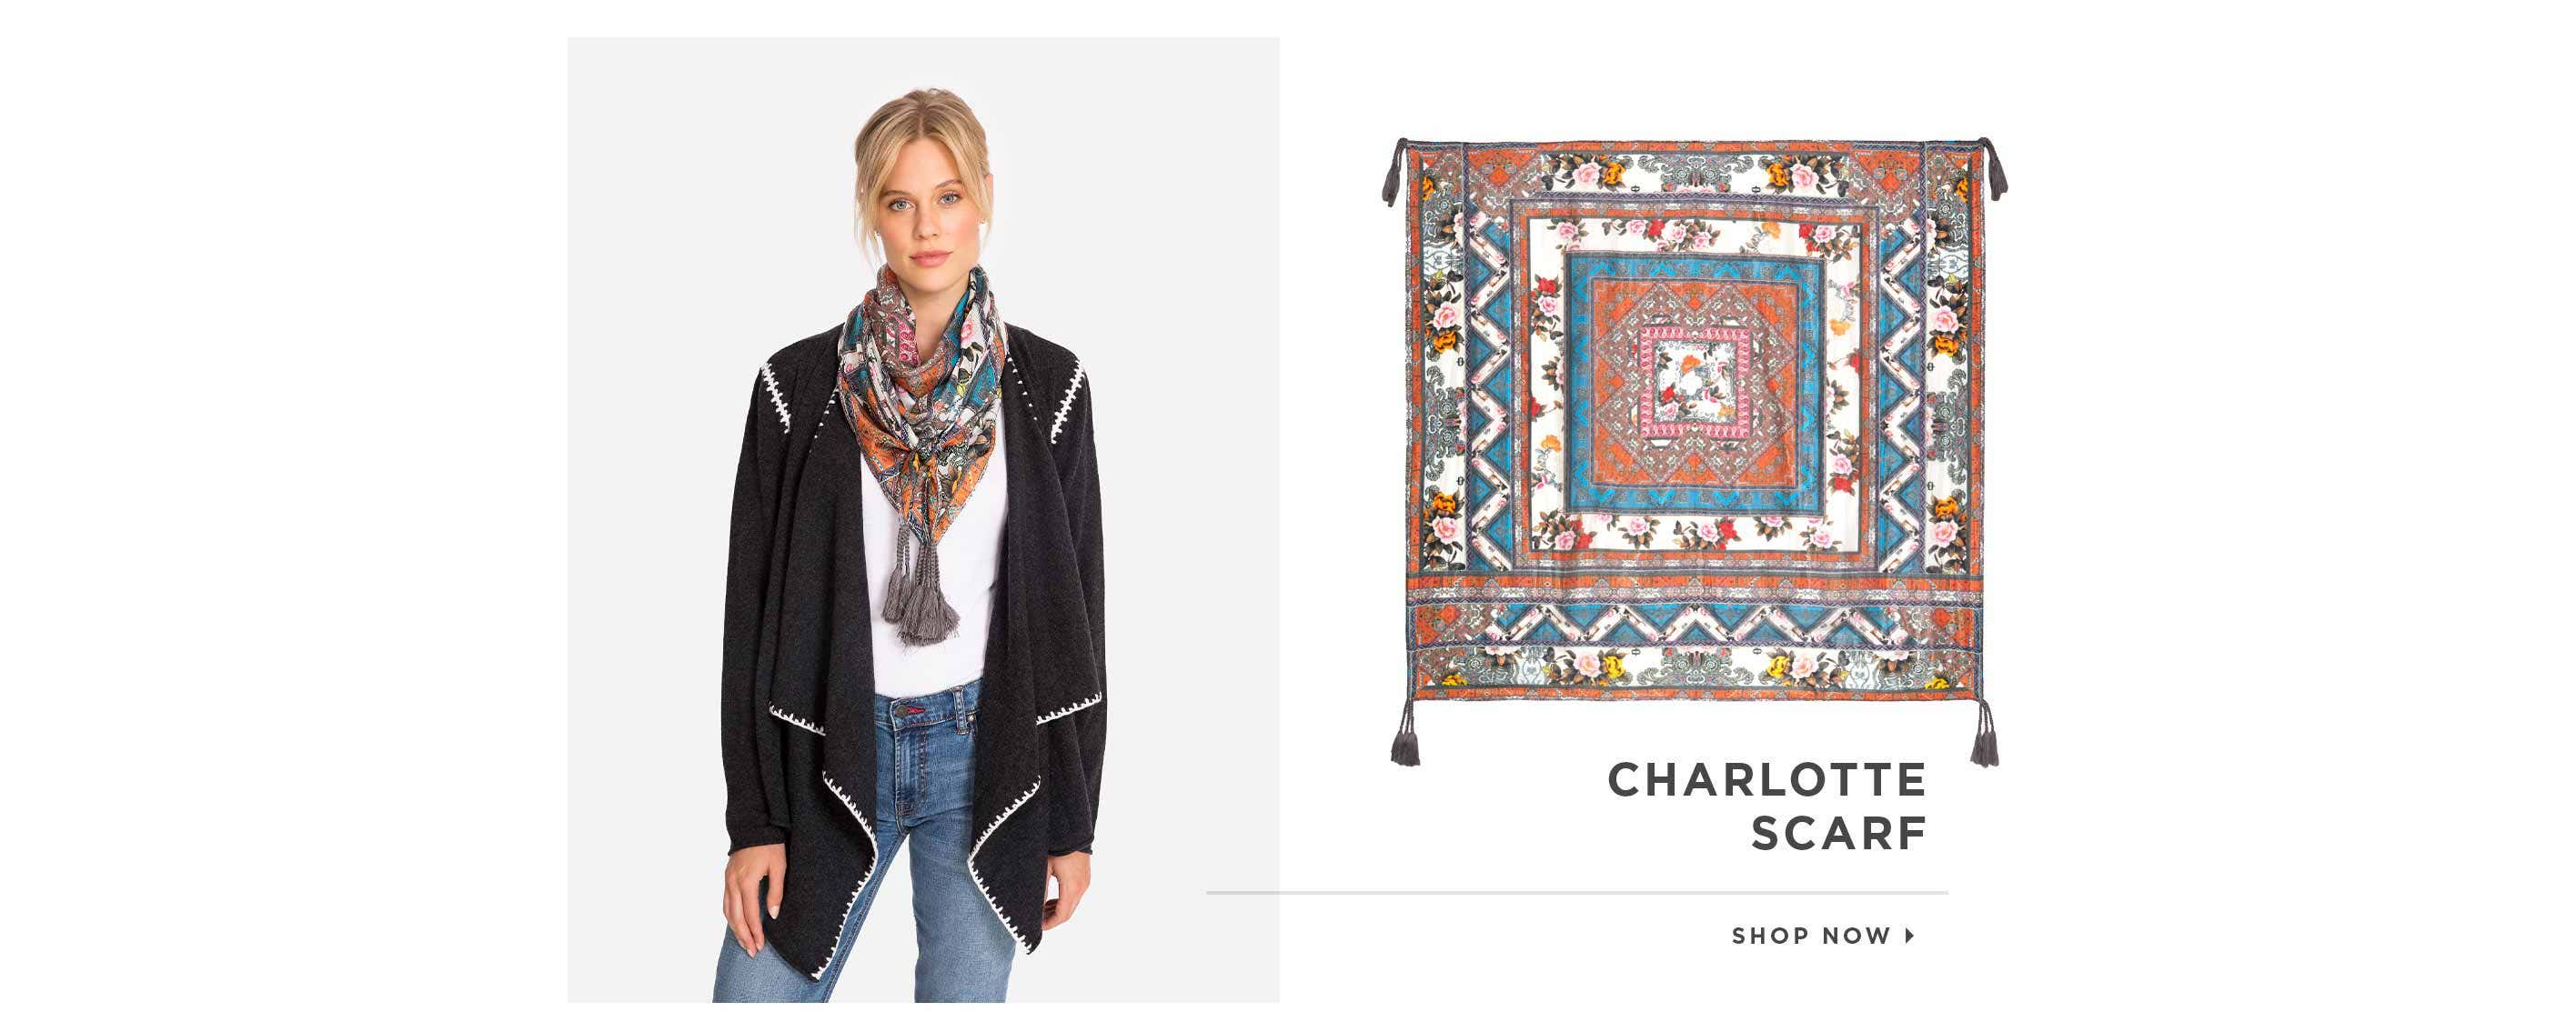 Charlotte Scarf. Shop now.